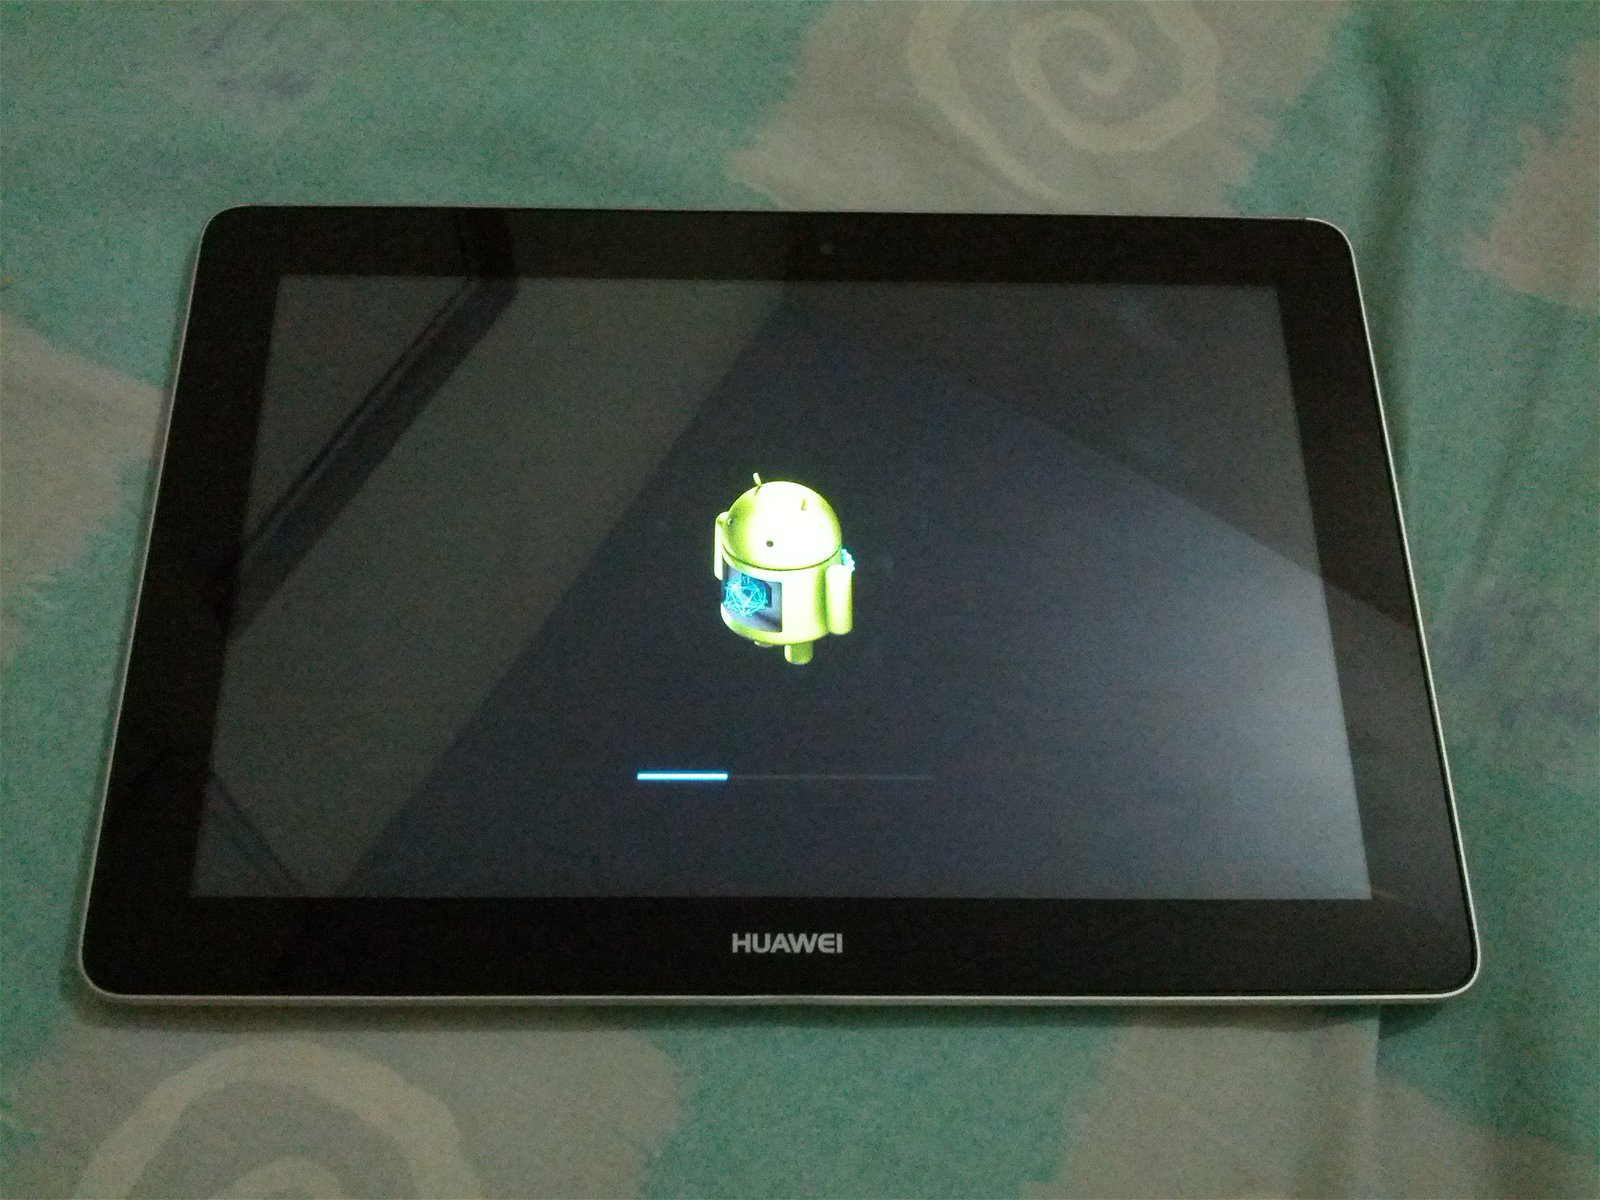 Huawei MediaPad 10 FHD: How to Enter Recovery Mode